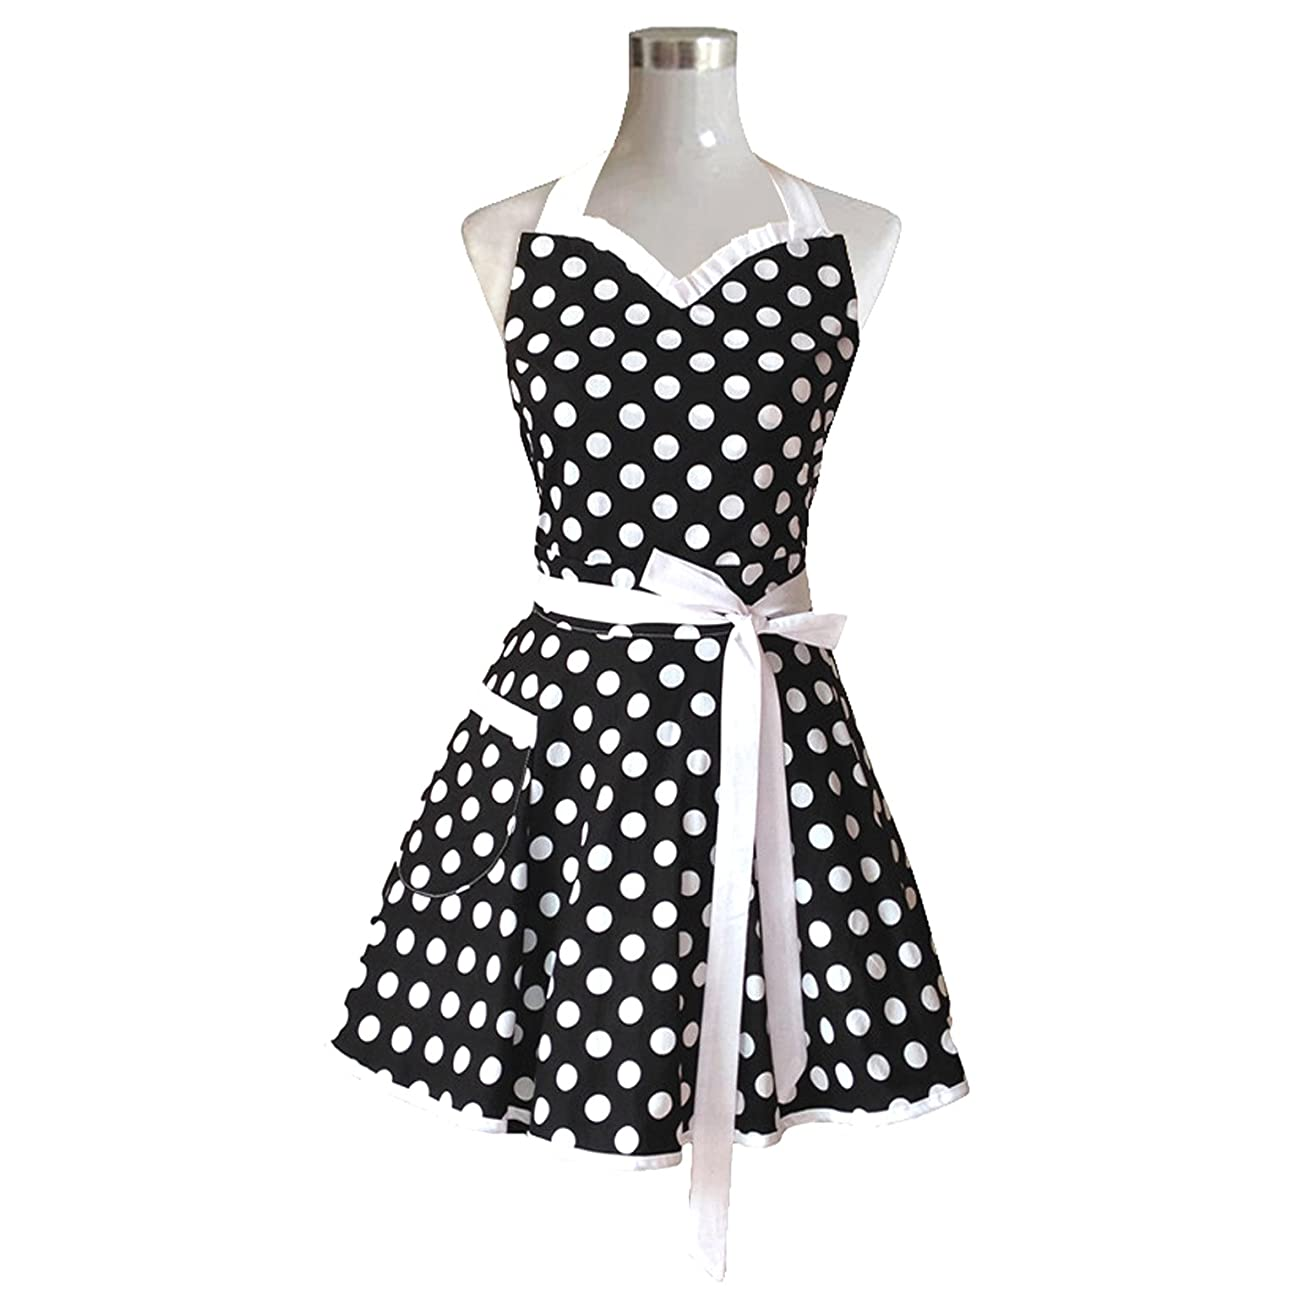 Lovely Sweetheart Black Retro Kitchen Aprons Woman Girl Cotton Polka Dot Cooking Salon Pinafore Vintage Apron Dress Gift 1